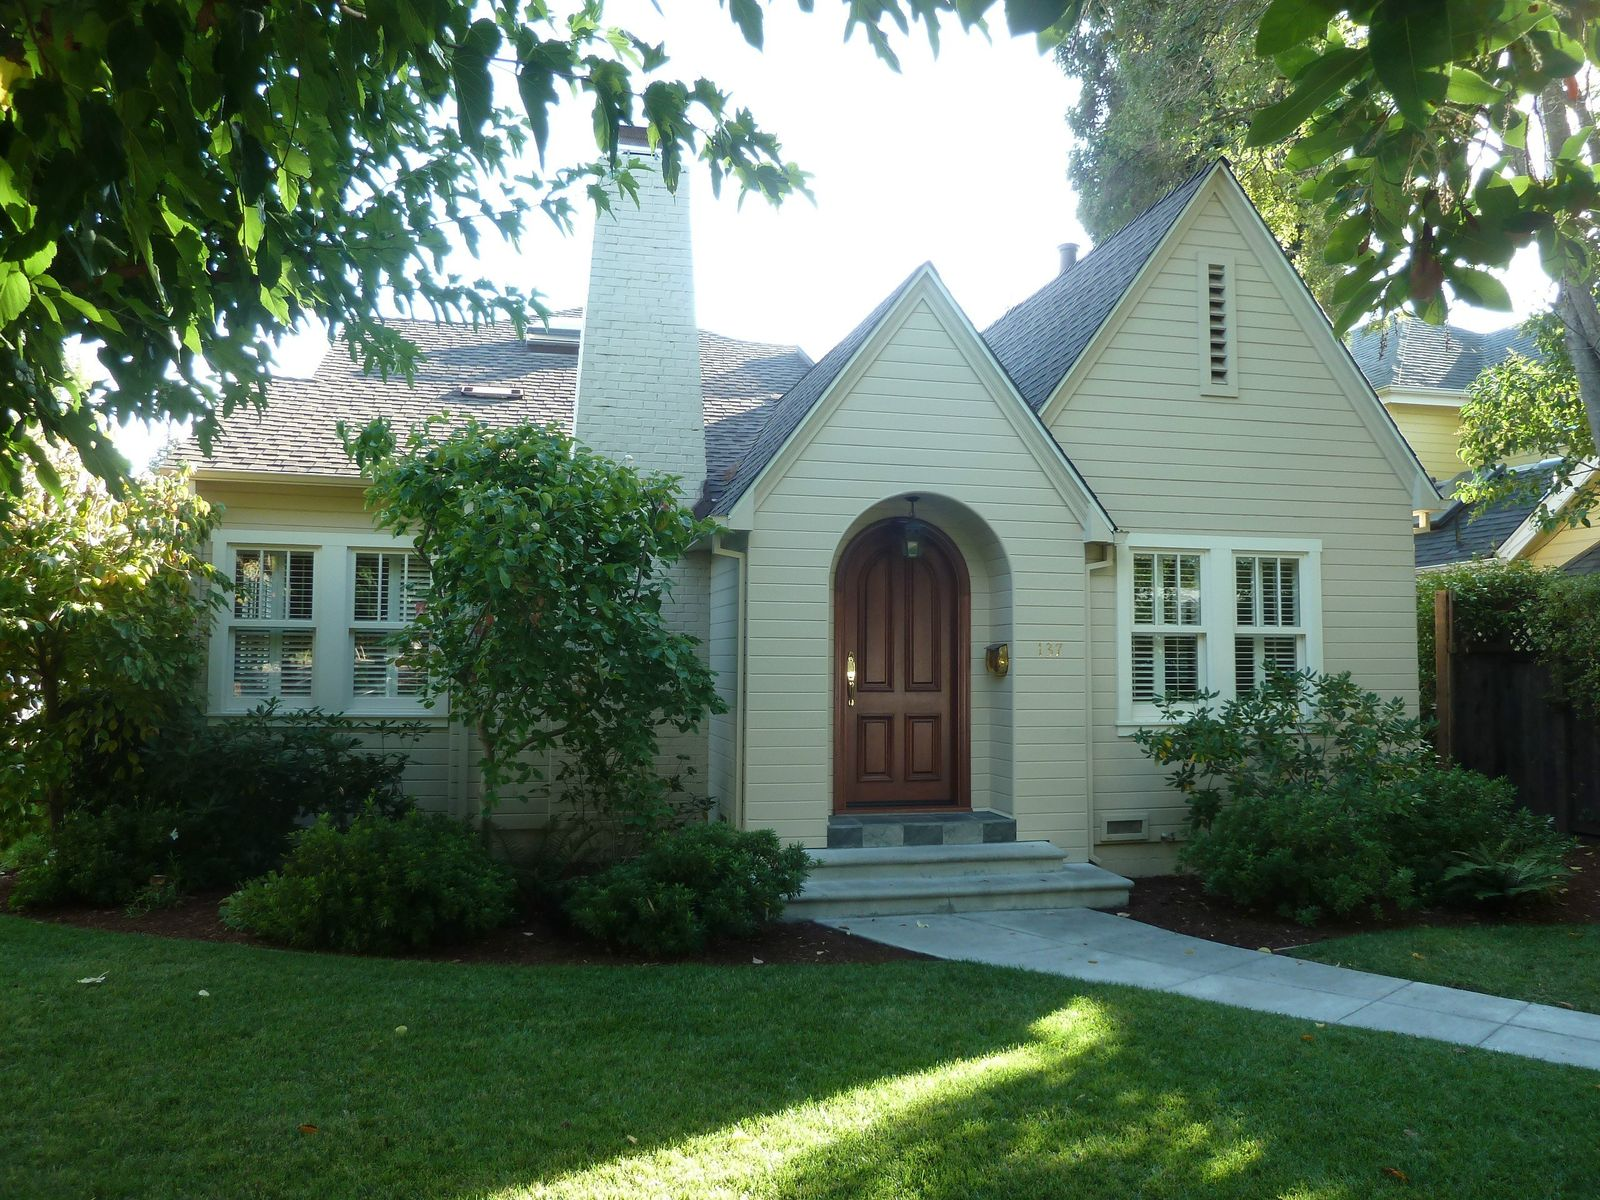 East Sonoma Cottage, Sonoma CA Single Family Home - Sonoma - Napa Real Estate